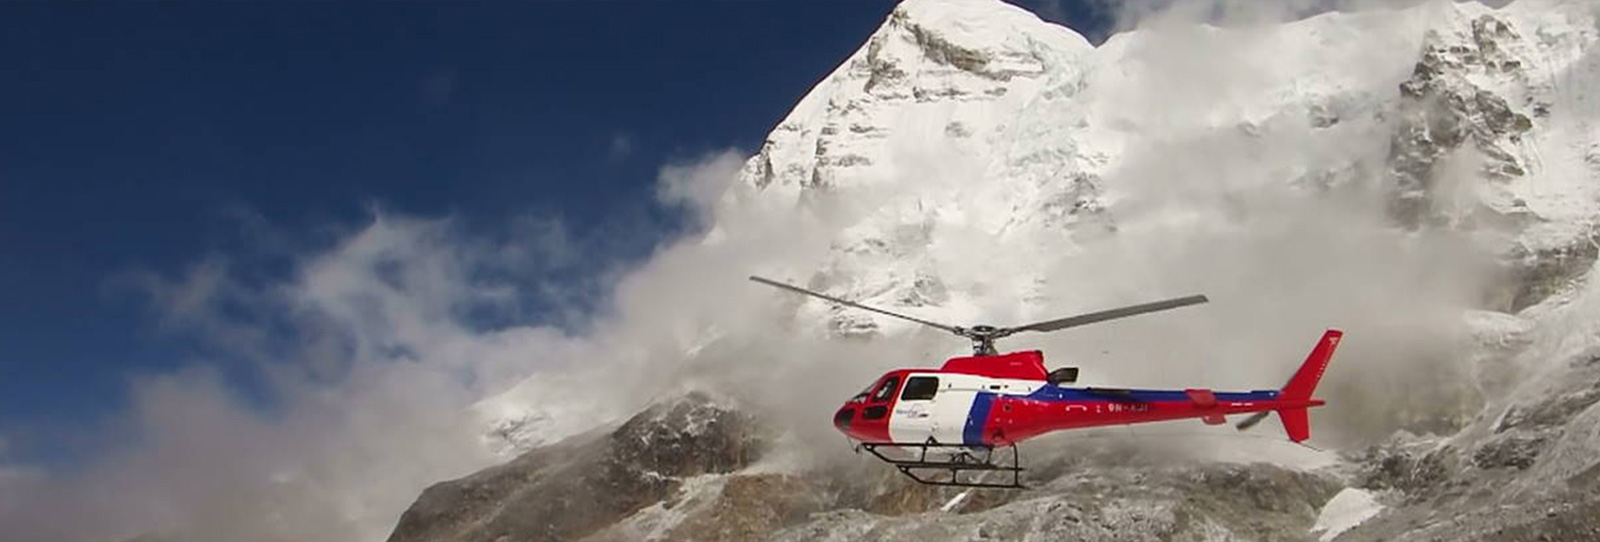 Annapurna Heli Sightseeing Day Tour